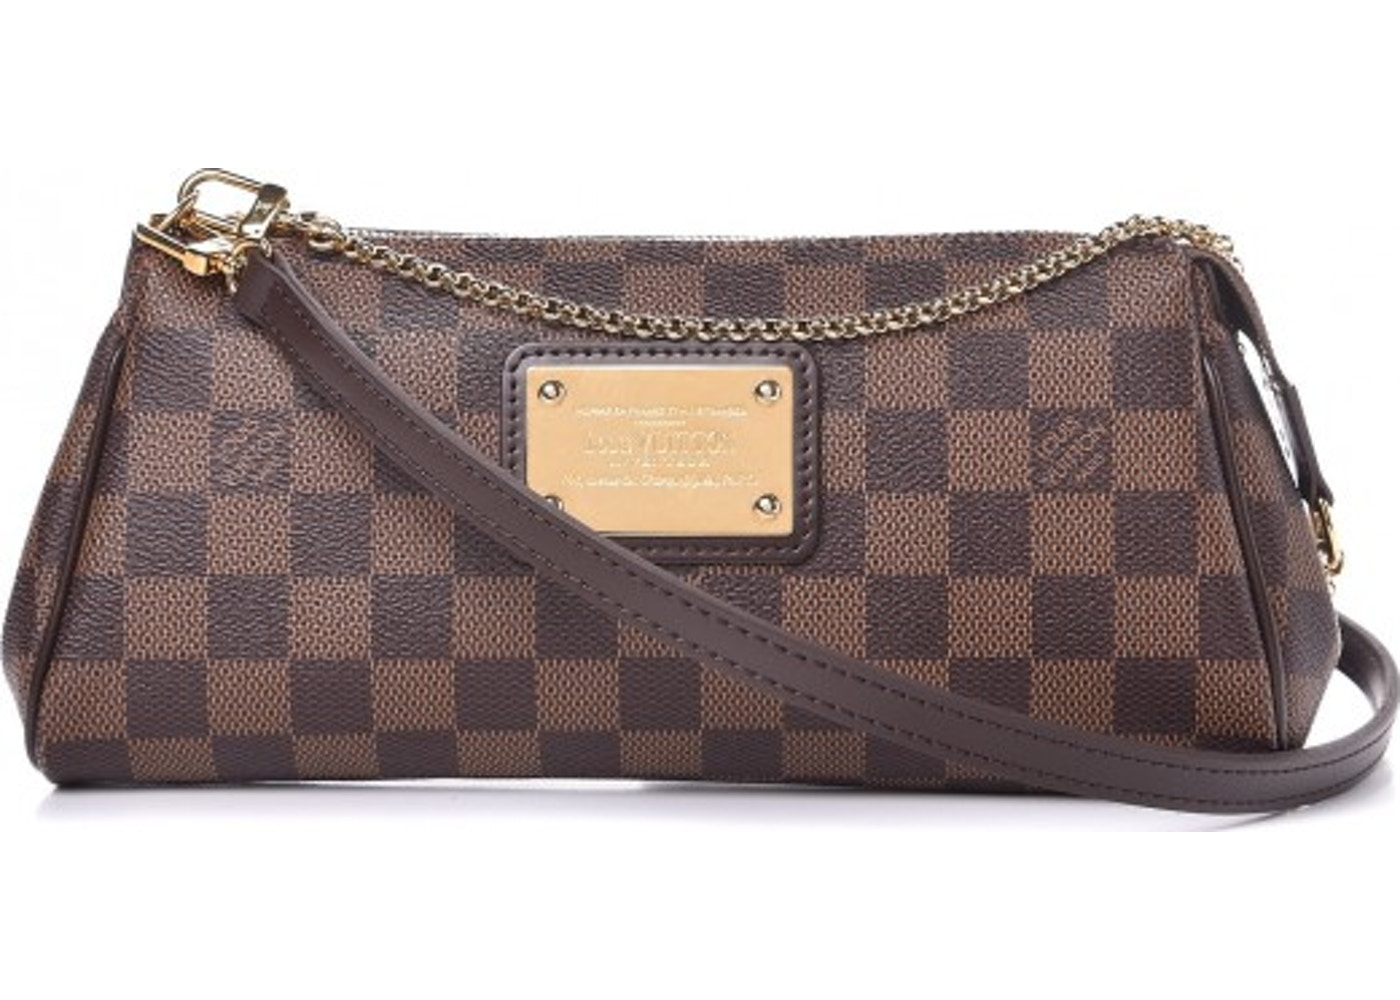 65a80aec92af Louis Vuitton Eva Damier Ebene Brown. Damier Ebene Brown